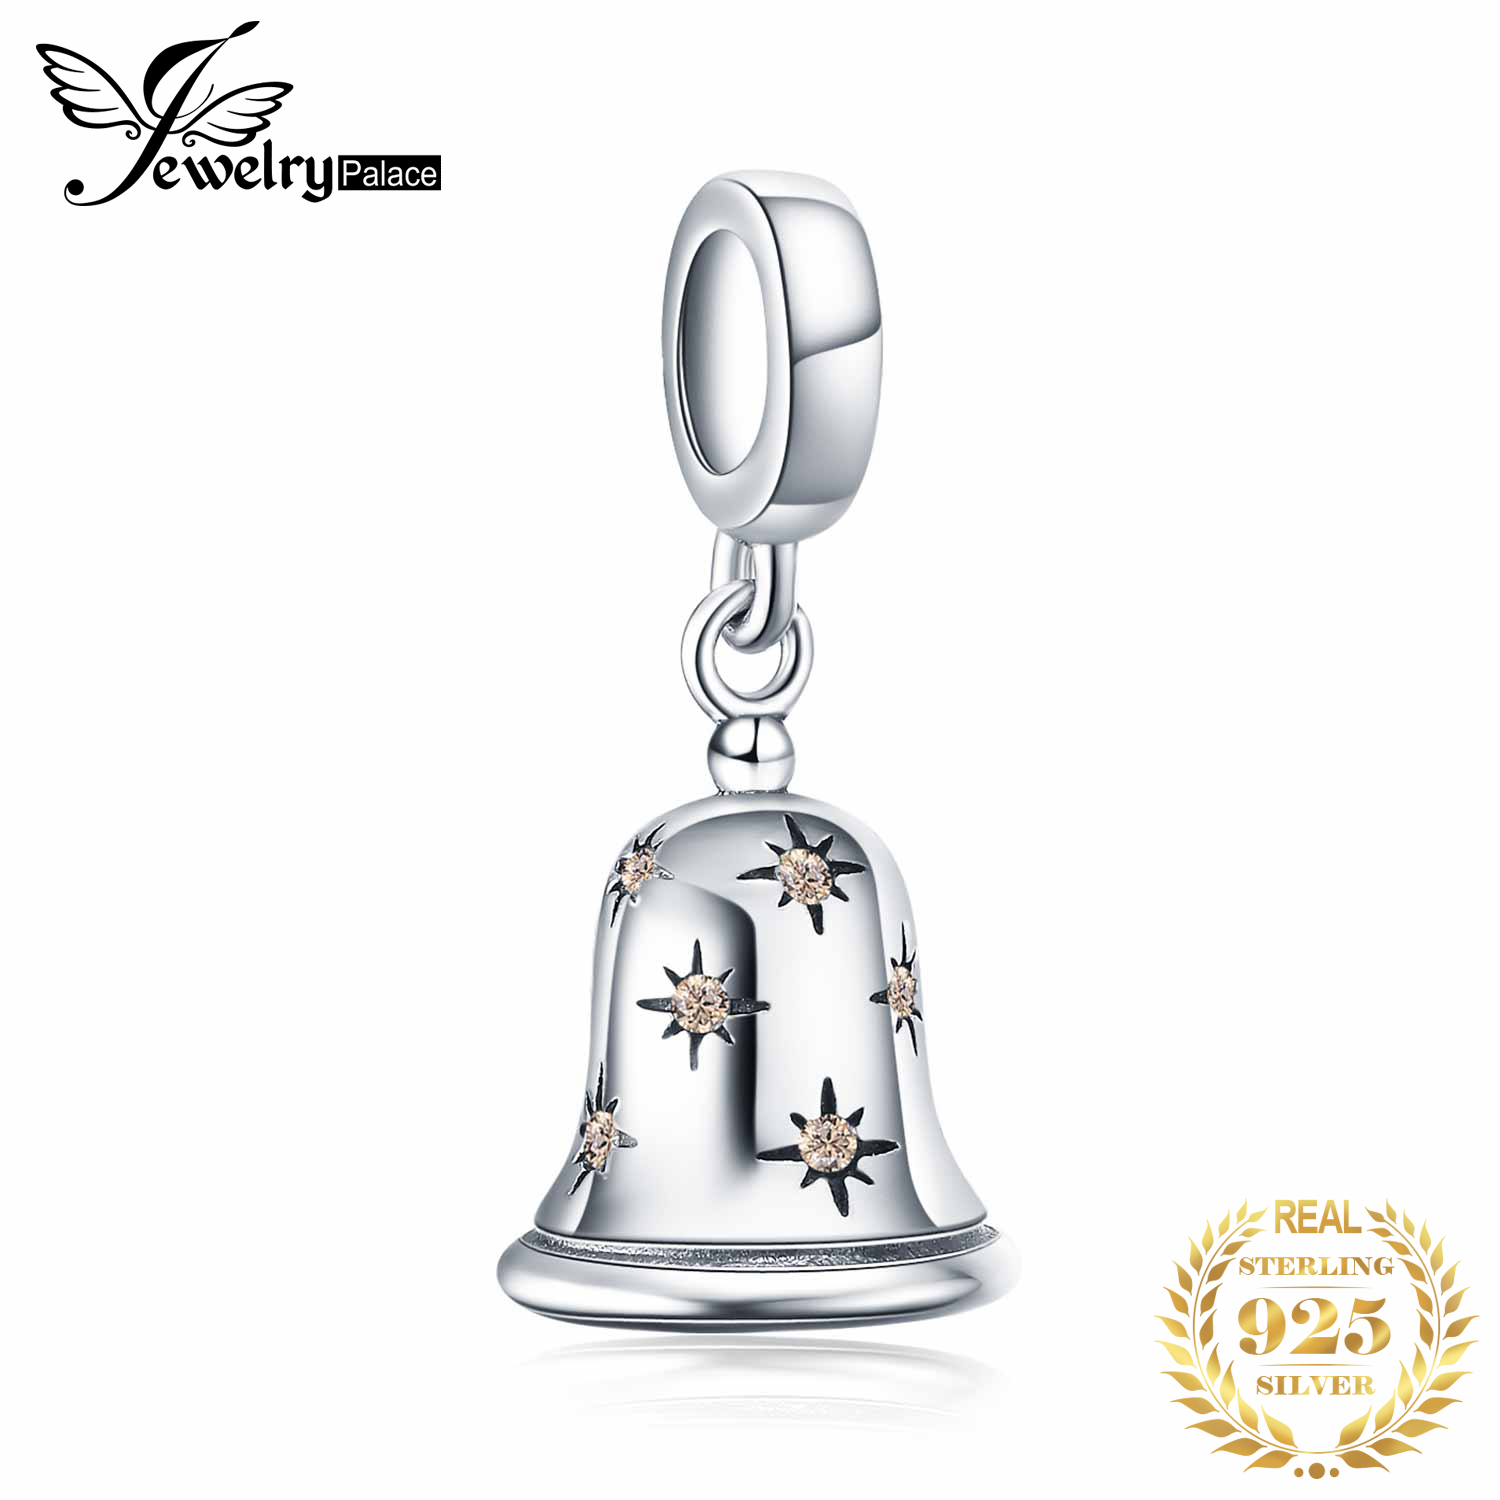 JewelryPalace Jingle Bell 925 Sterling Silver Beads Charms Silver 925 Original For Bracelet Silver 925 Original Jewelry Making